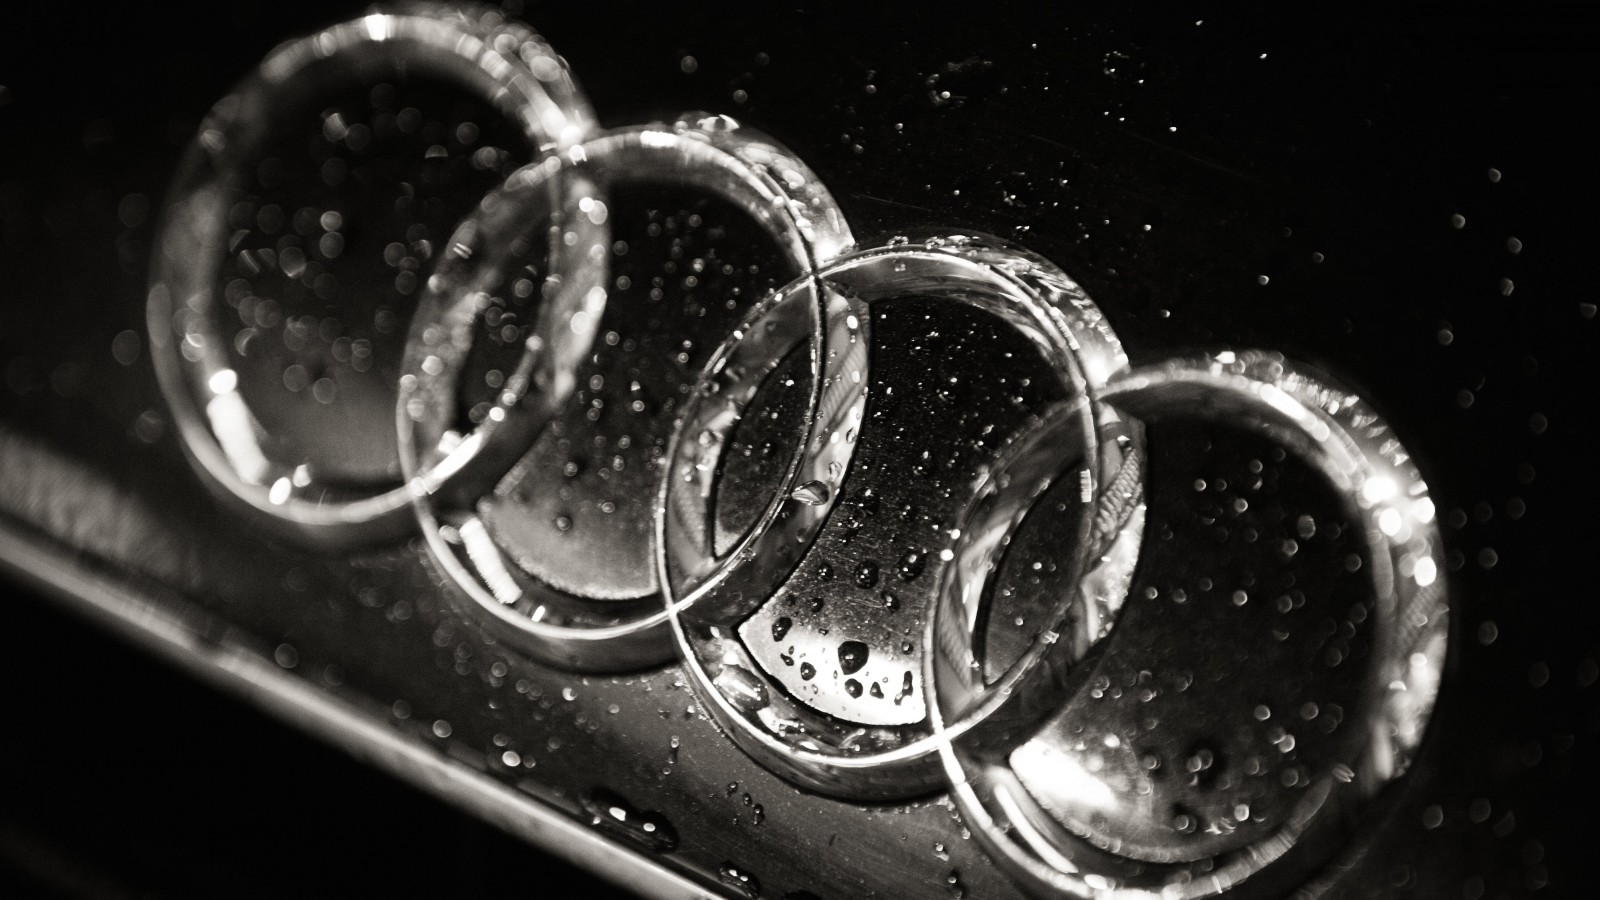 Audi Logo in Black & White Wallpaper for Desktop 1600x900